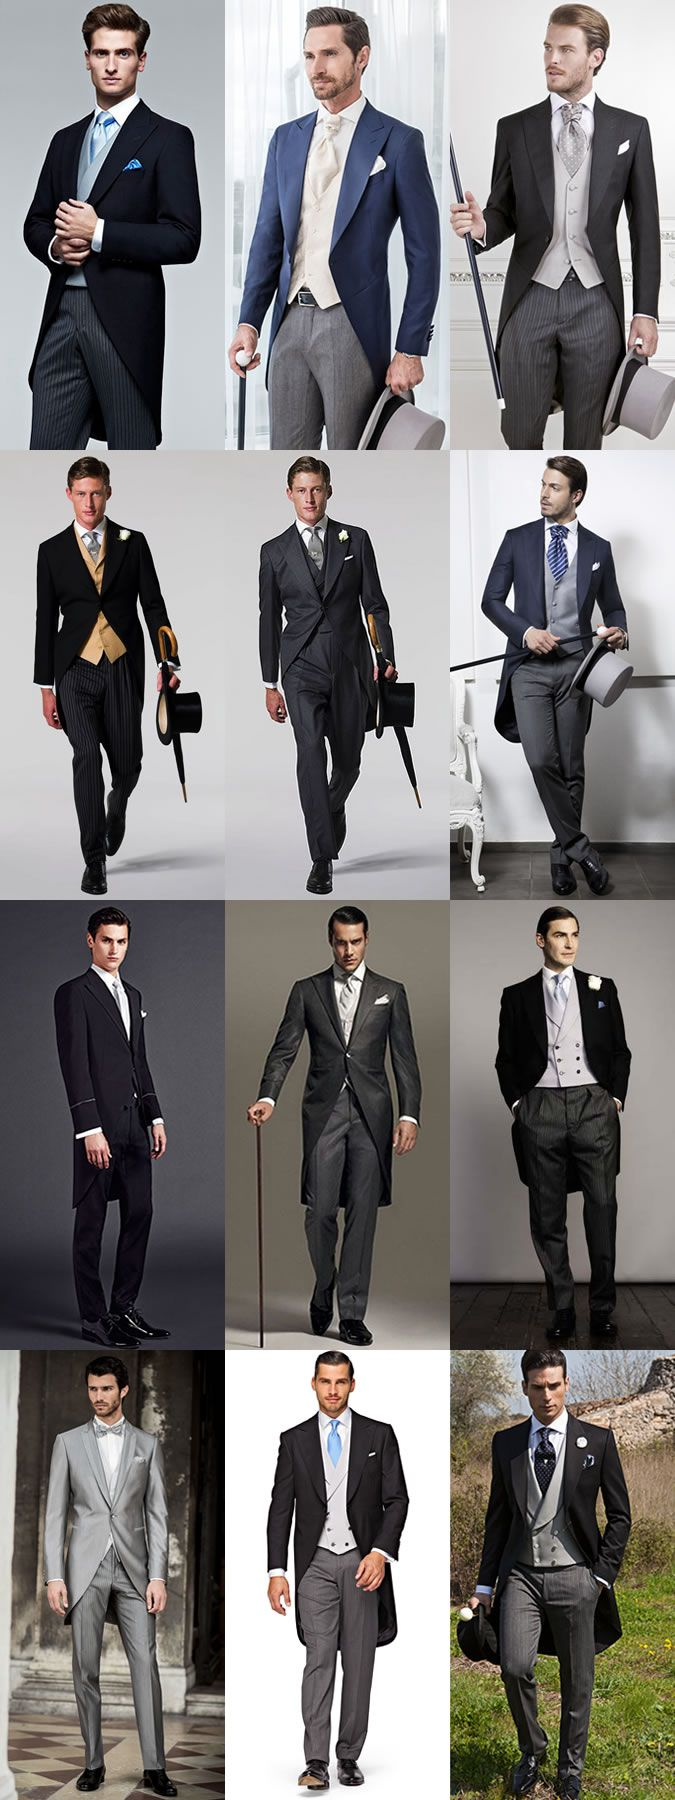 The 25 Best Men Wedding Suits Ideas On Pinterest Outfits Tweed And Groom Outfit